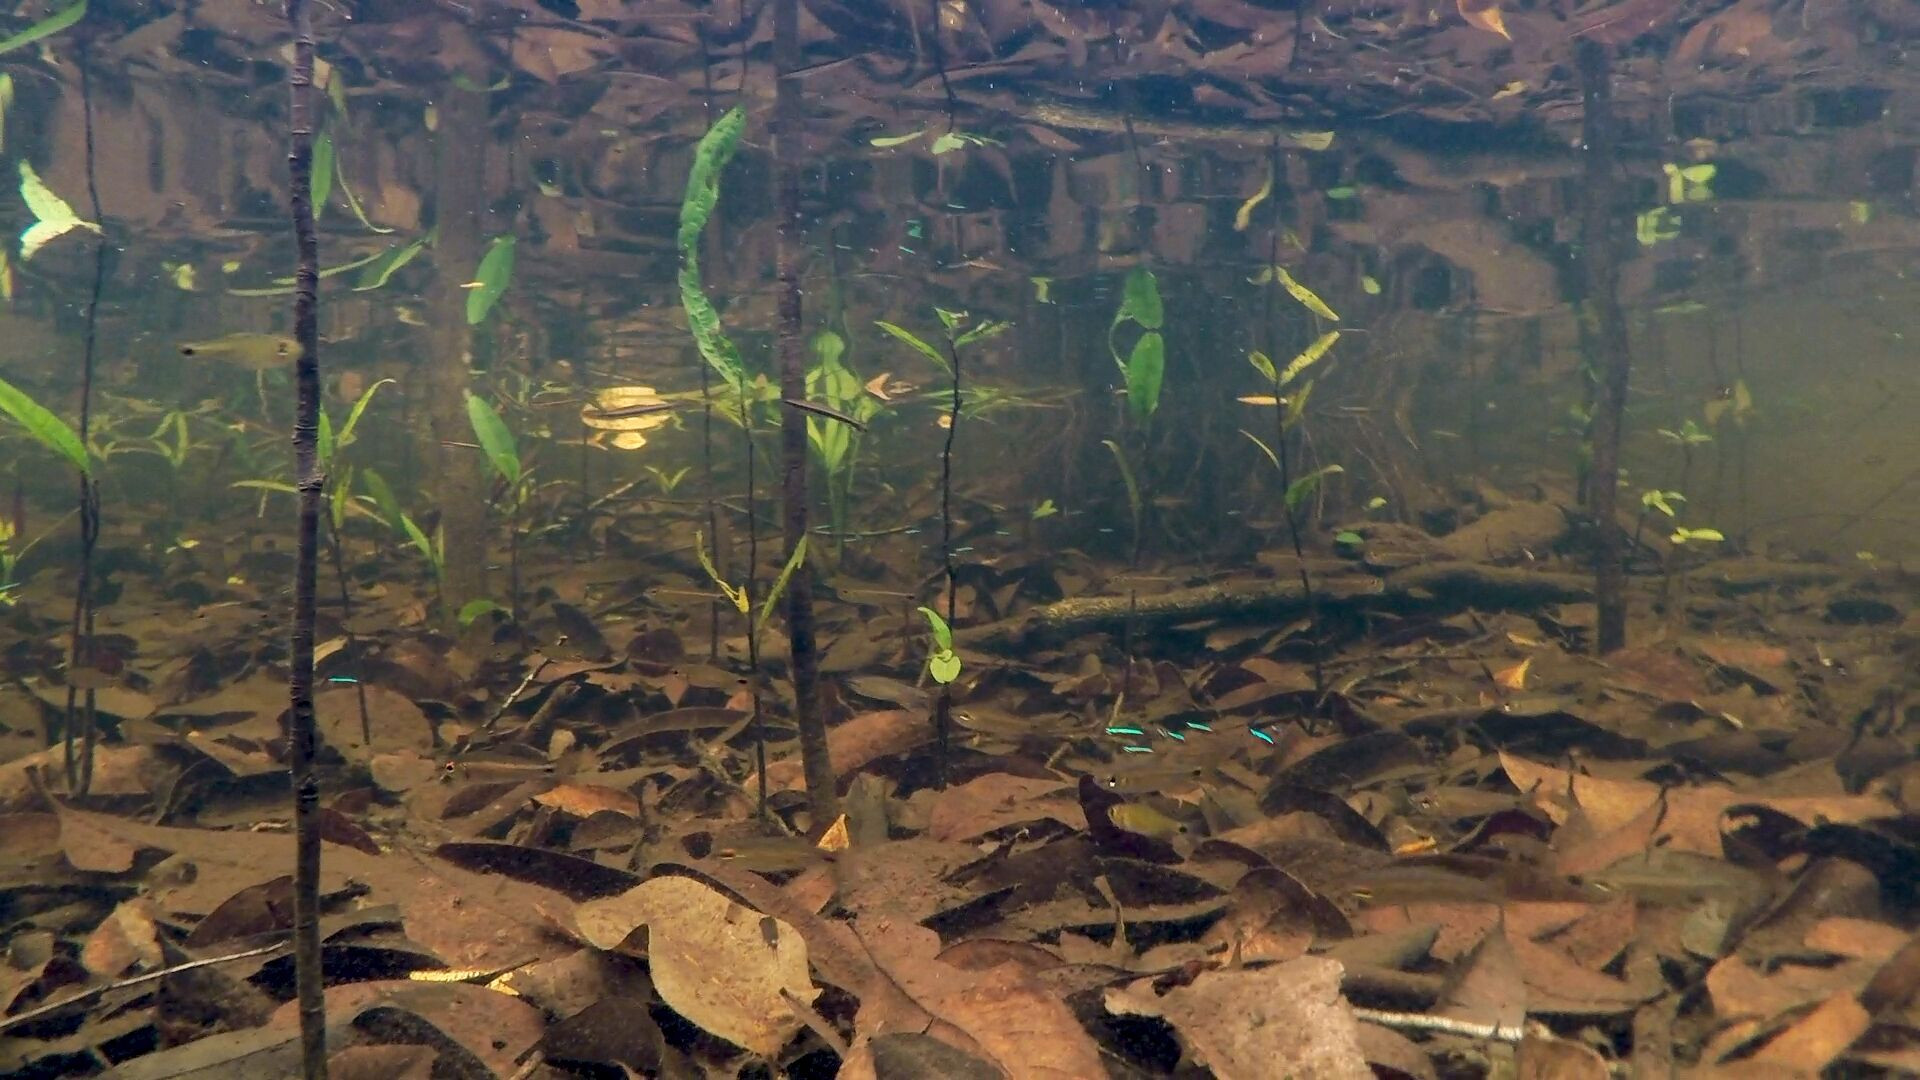 Wild habitat of Cardinal Tetras in Project Piaba's study area on the middle Rio Negro